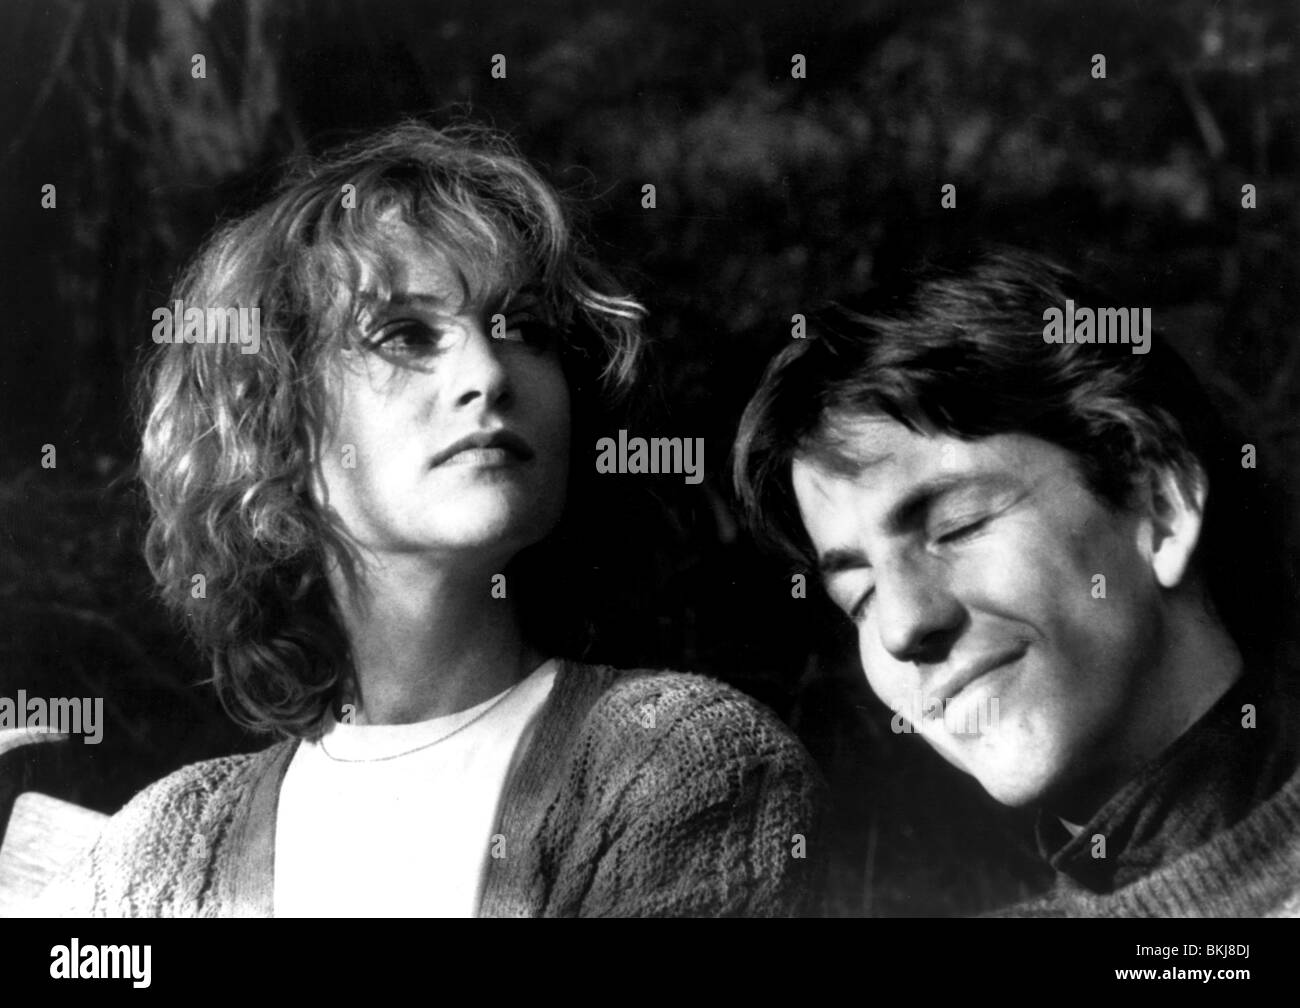 CACTUS (1986) ISABELLE HUPPERT, ROBERT MENZIES CACS 003P - Stock Image